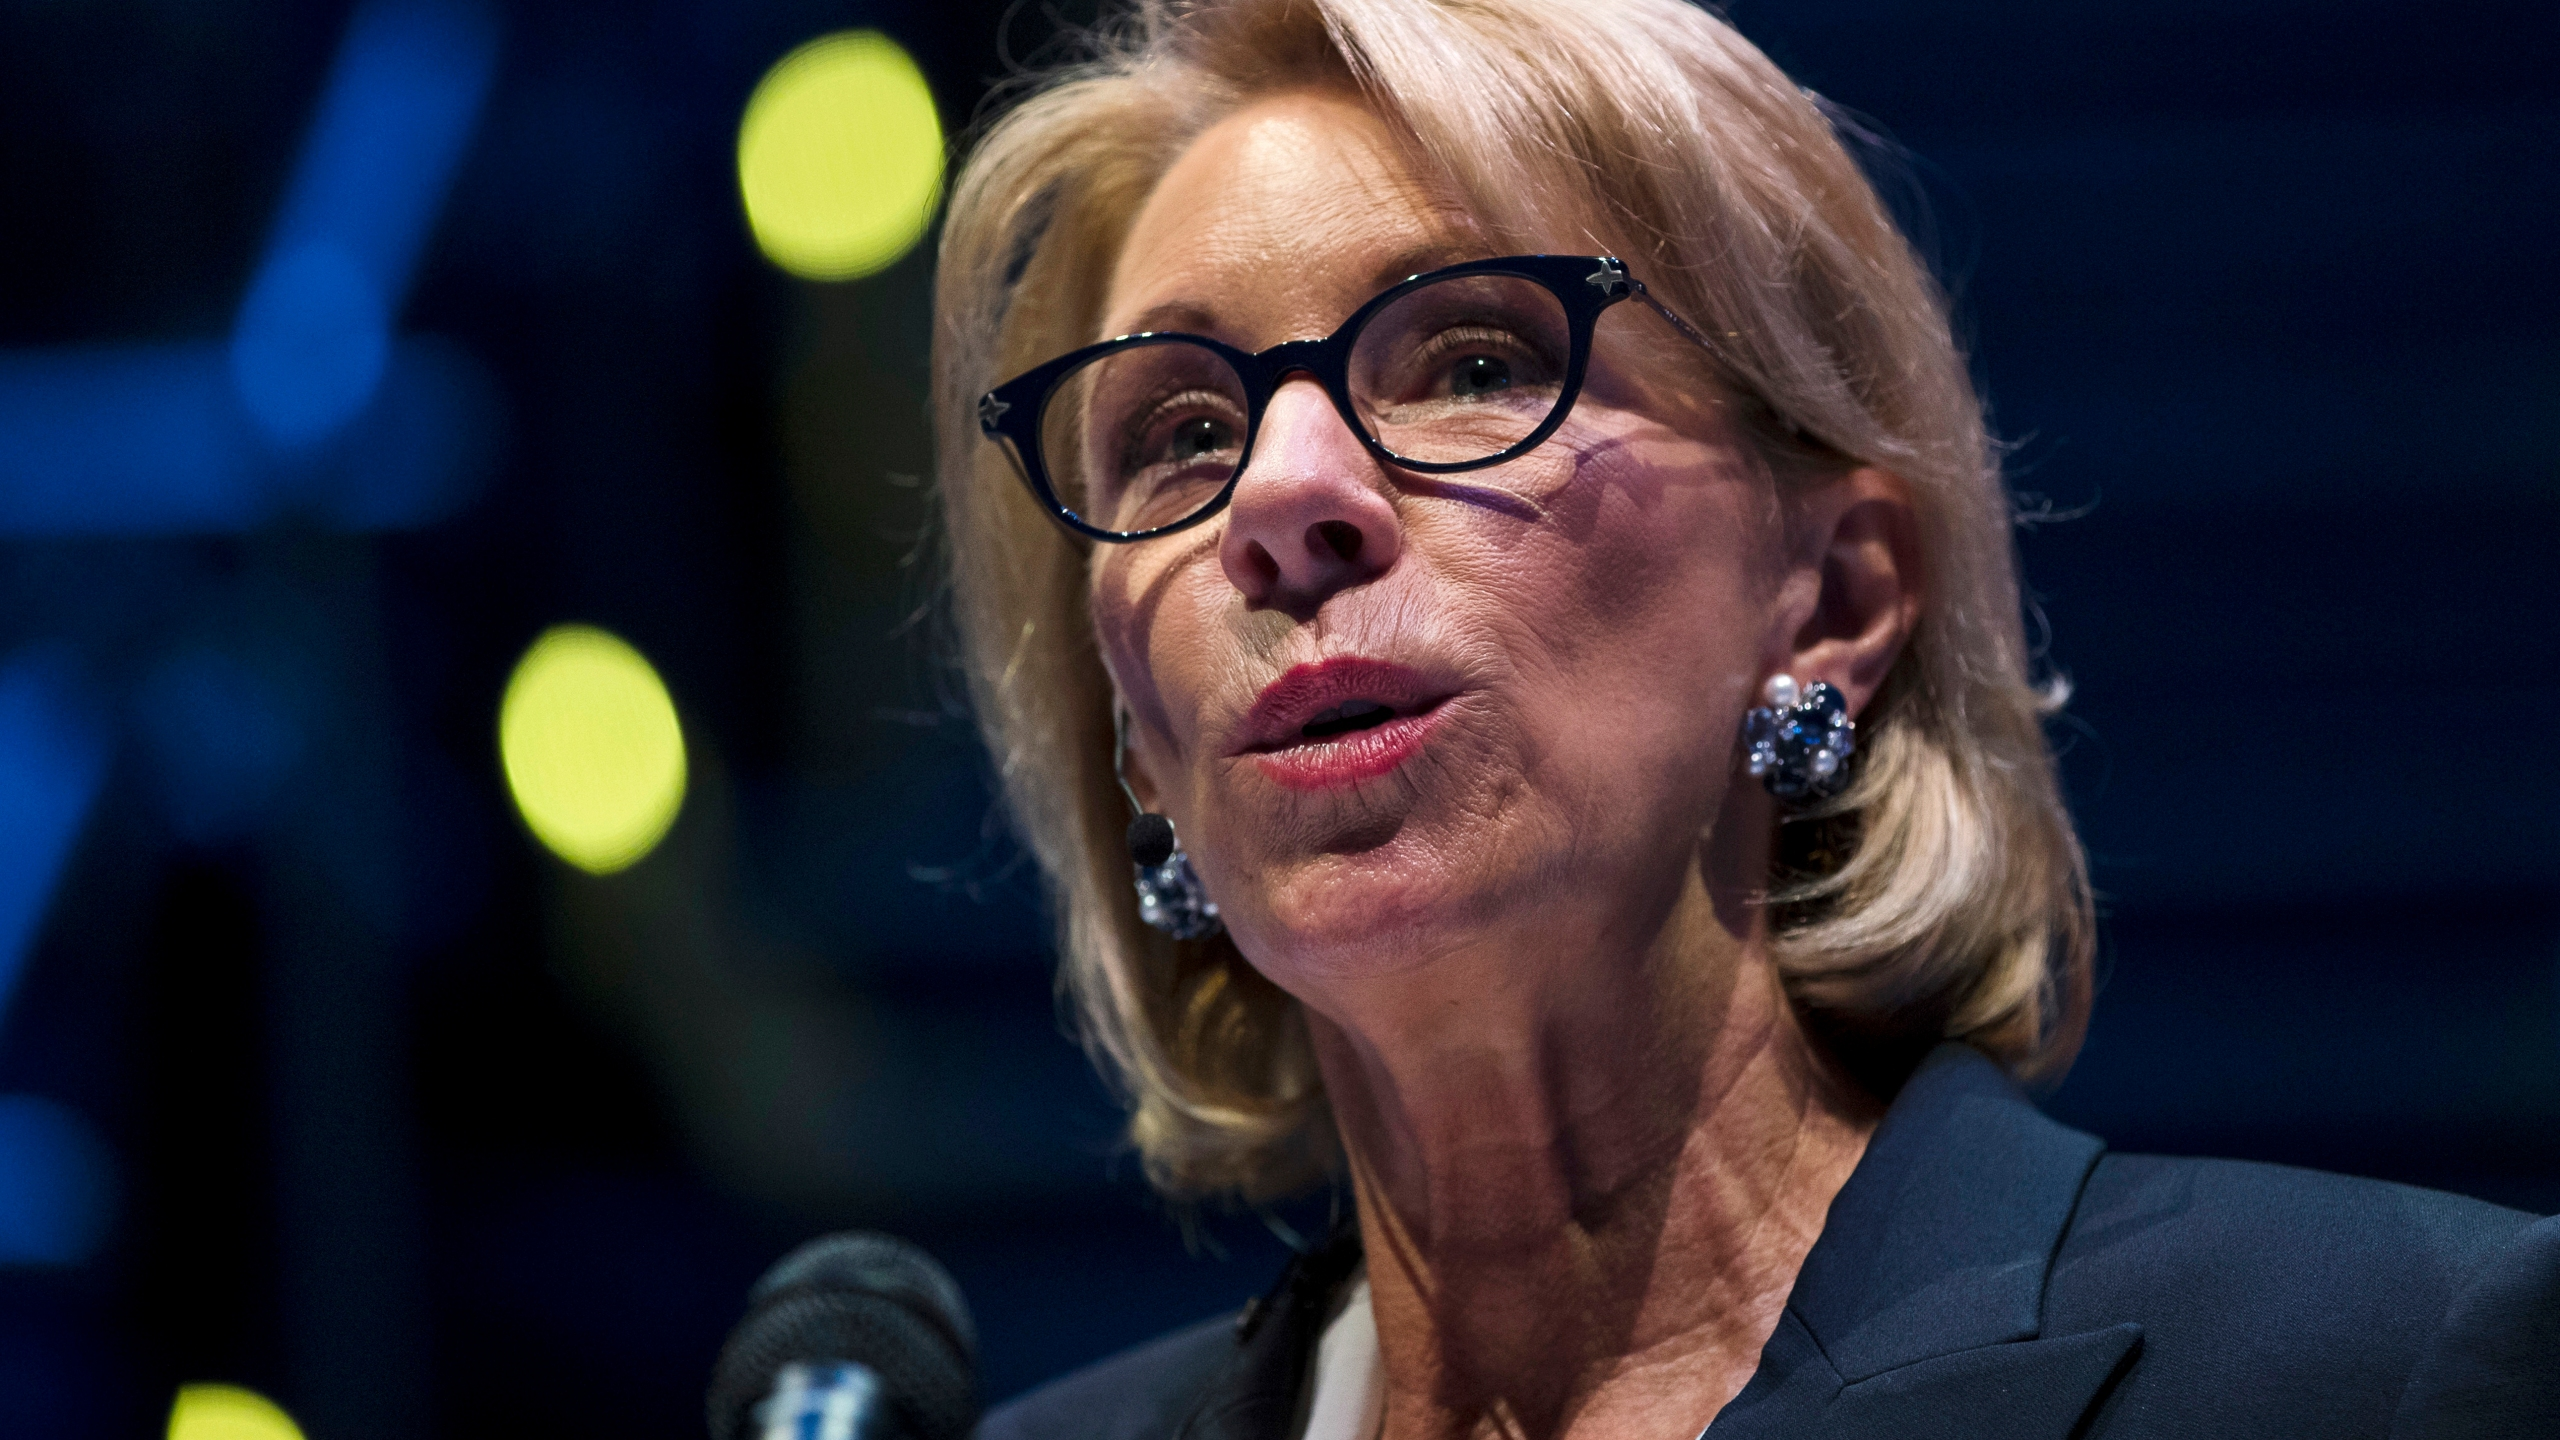 DeVos_For_Profit_Colleges_17732-159532.jpg15484998